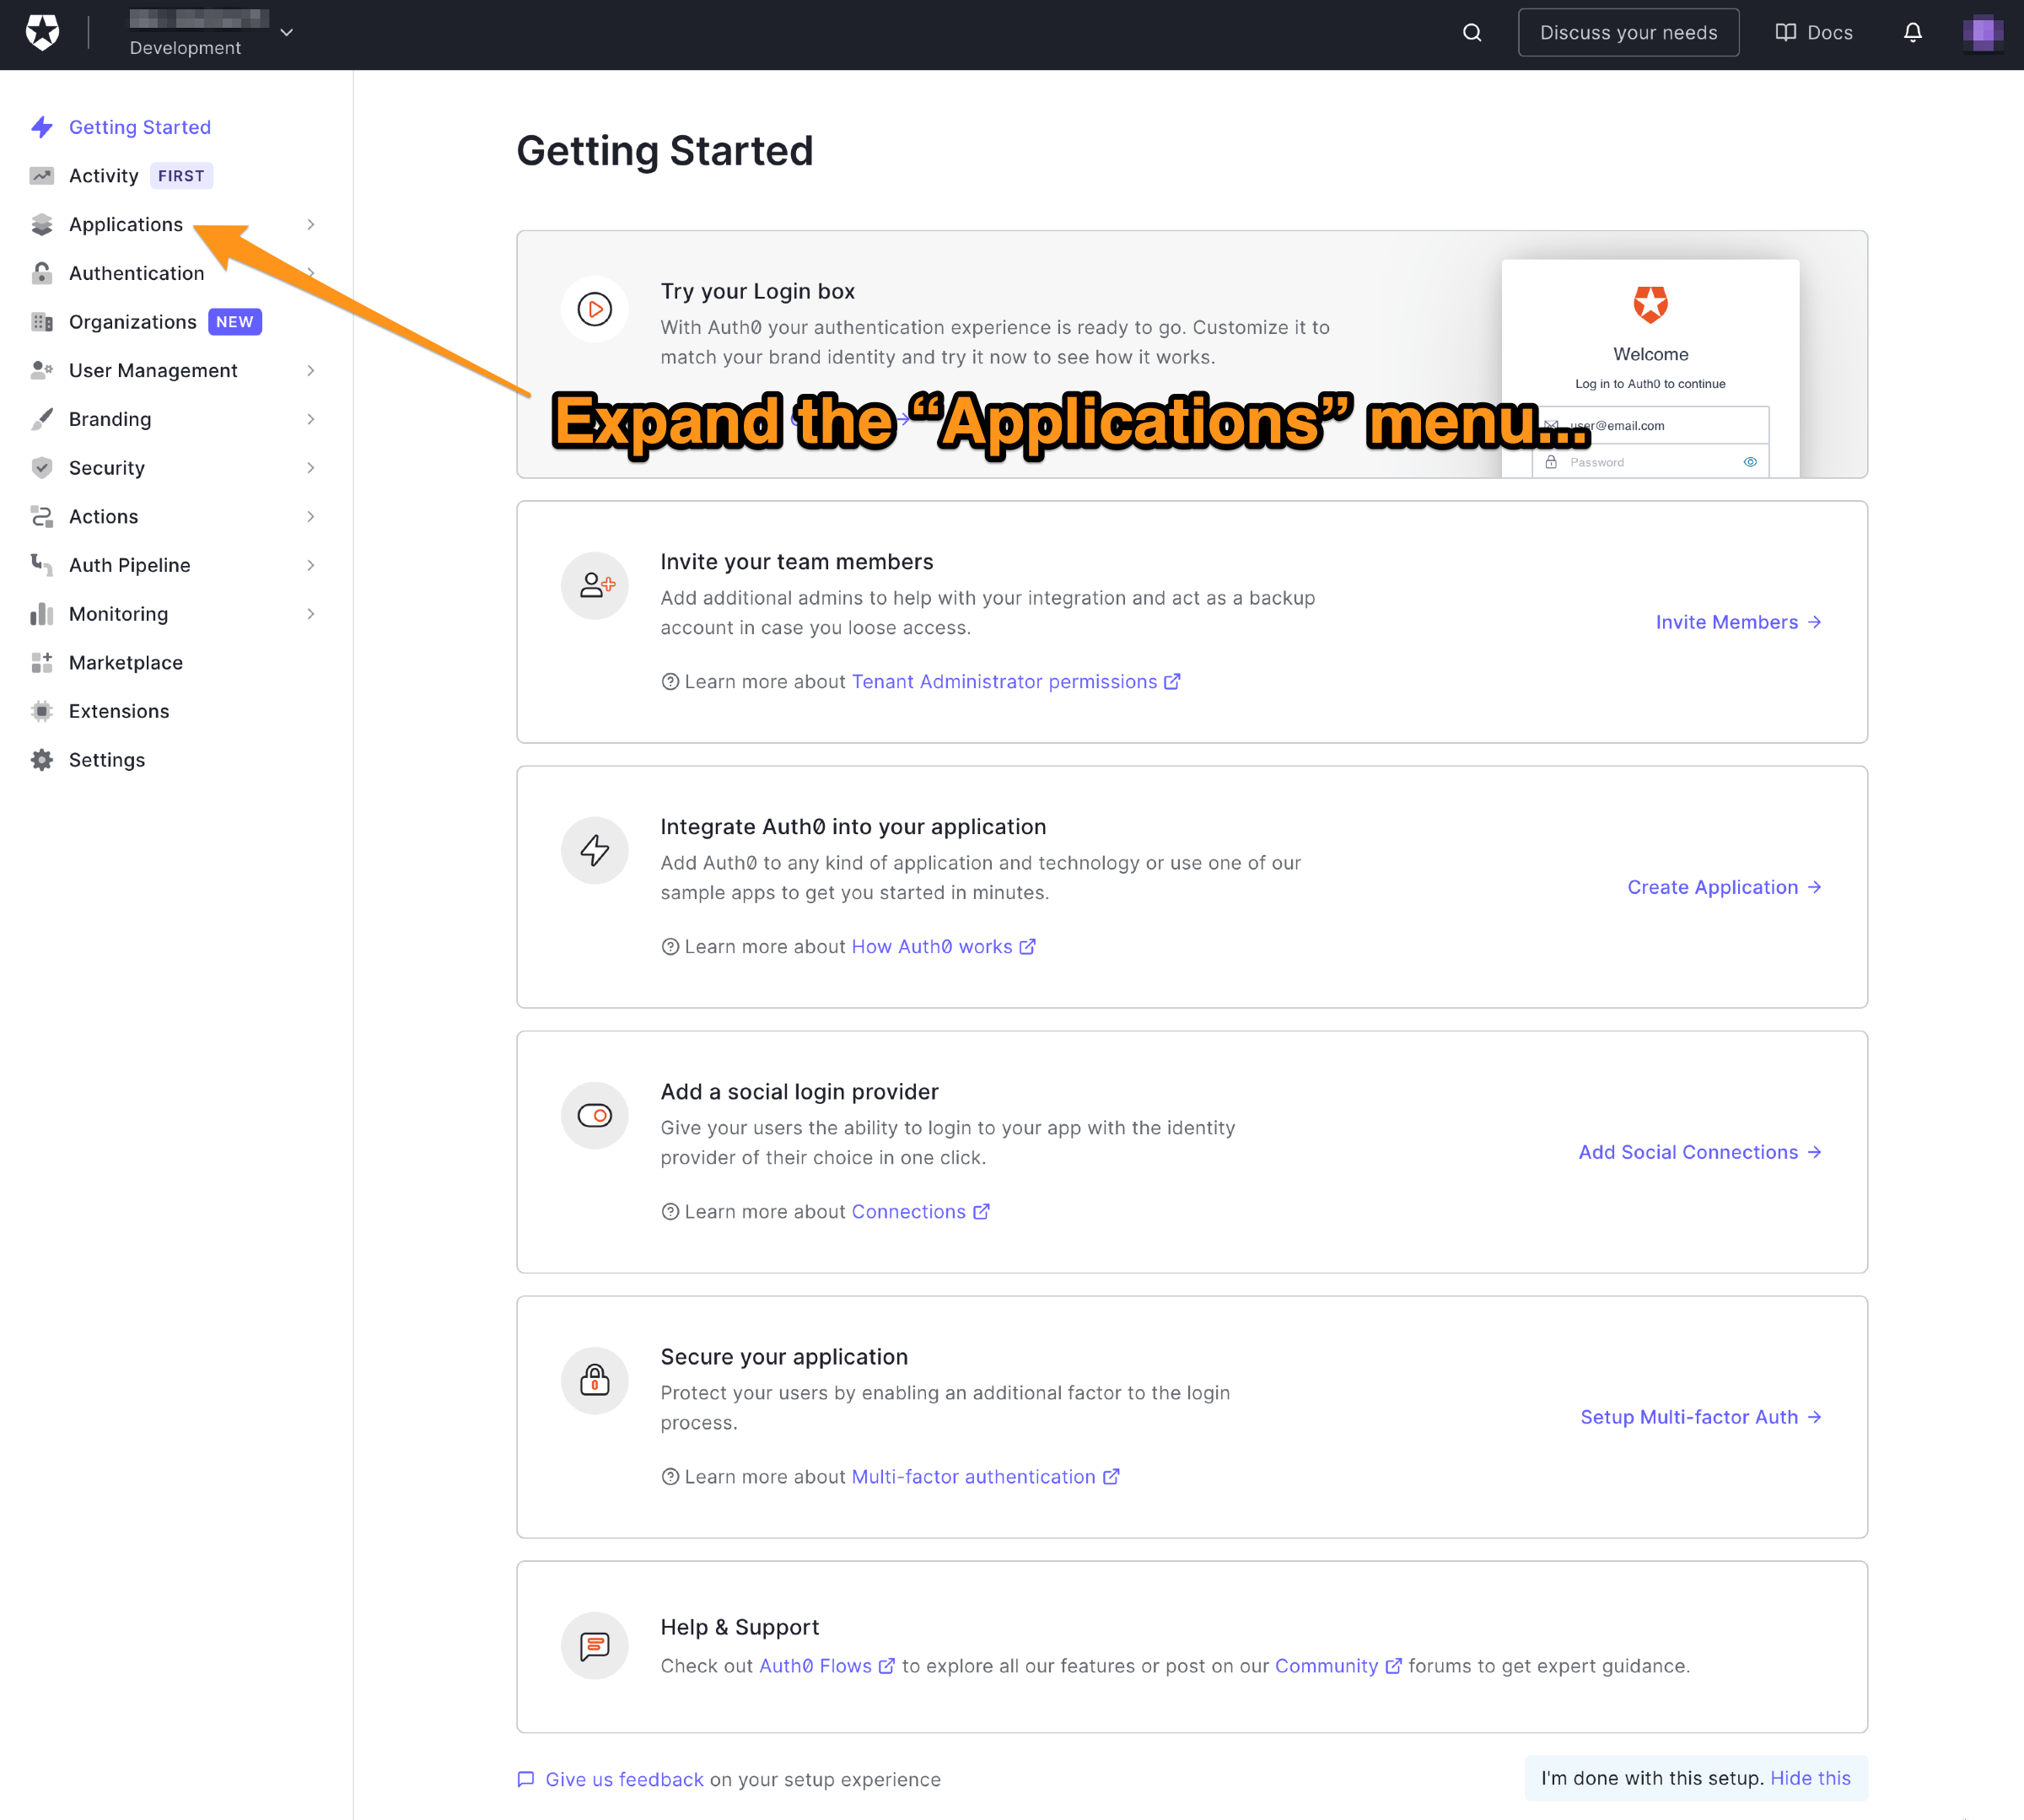 """The main page of the Auth0 dashboard. The reader is directed to expand the """"Applications"""" menu."""